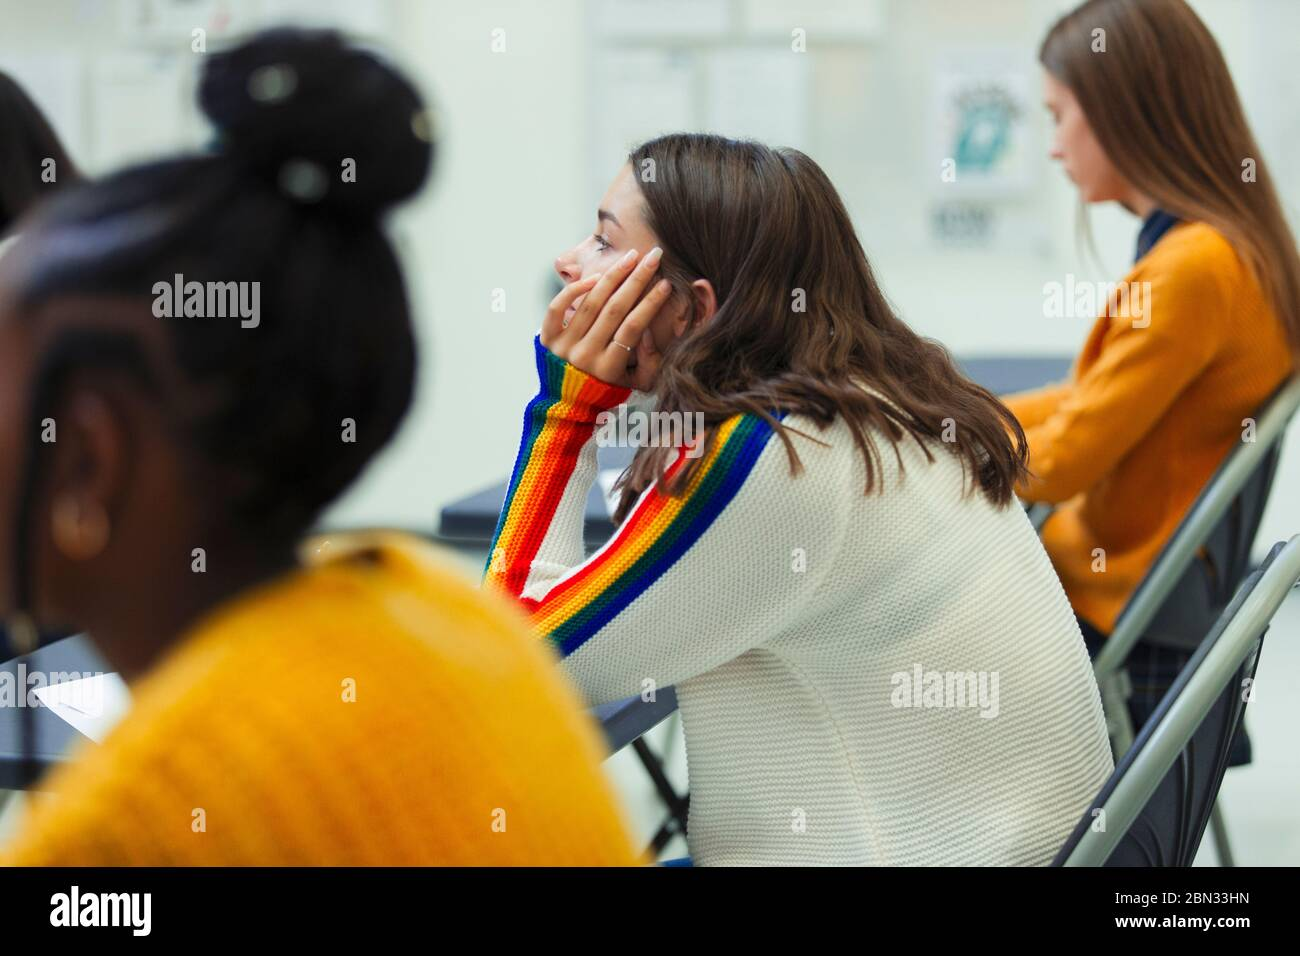 High school girl student taking exam at desk in classroom Stock Photo